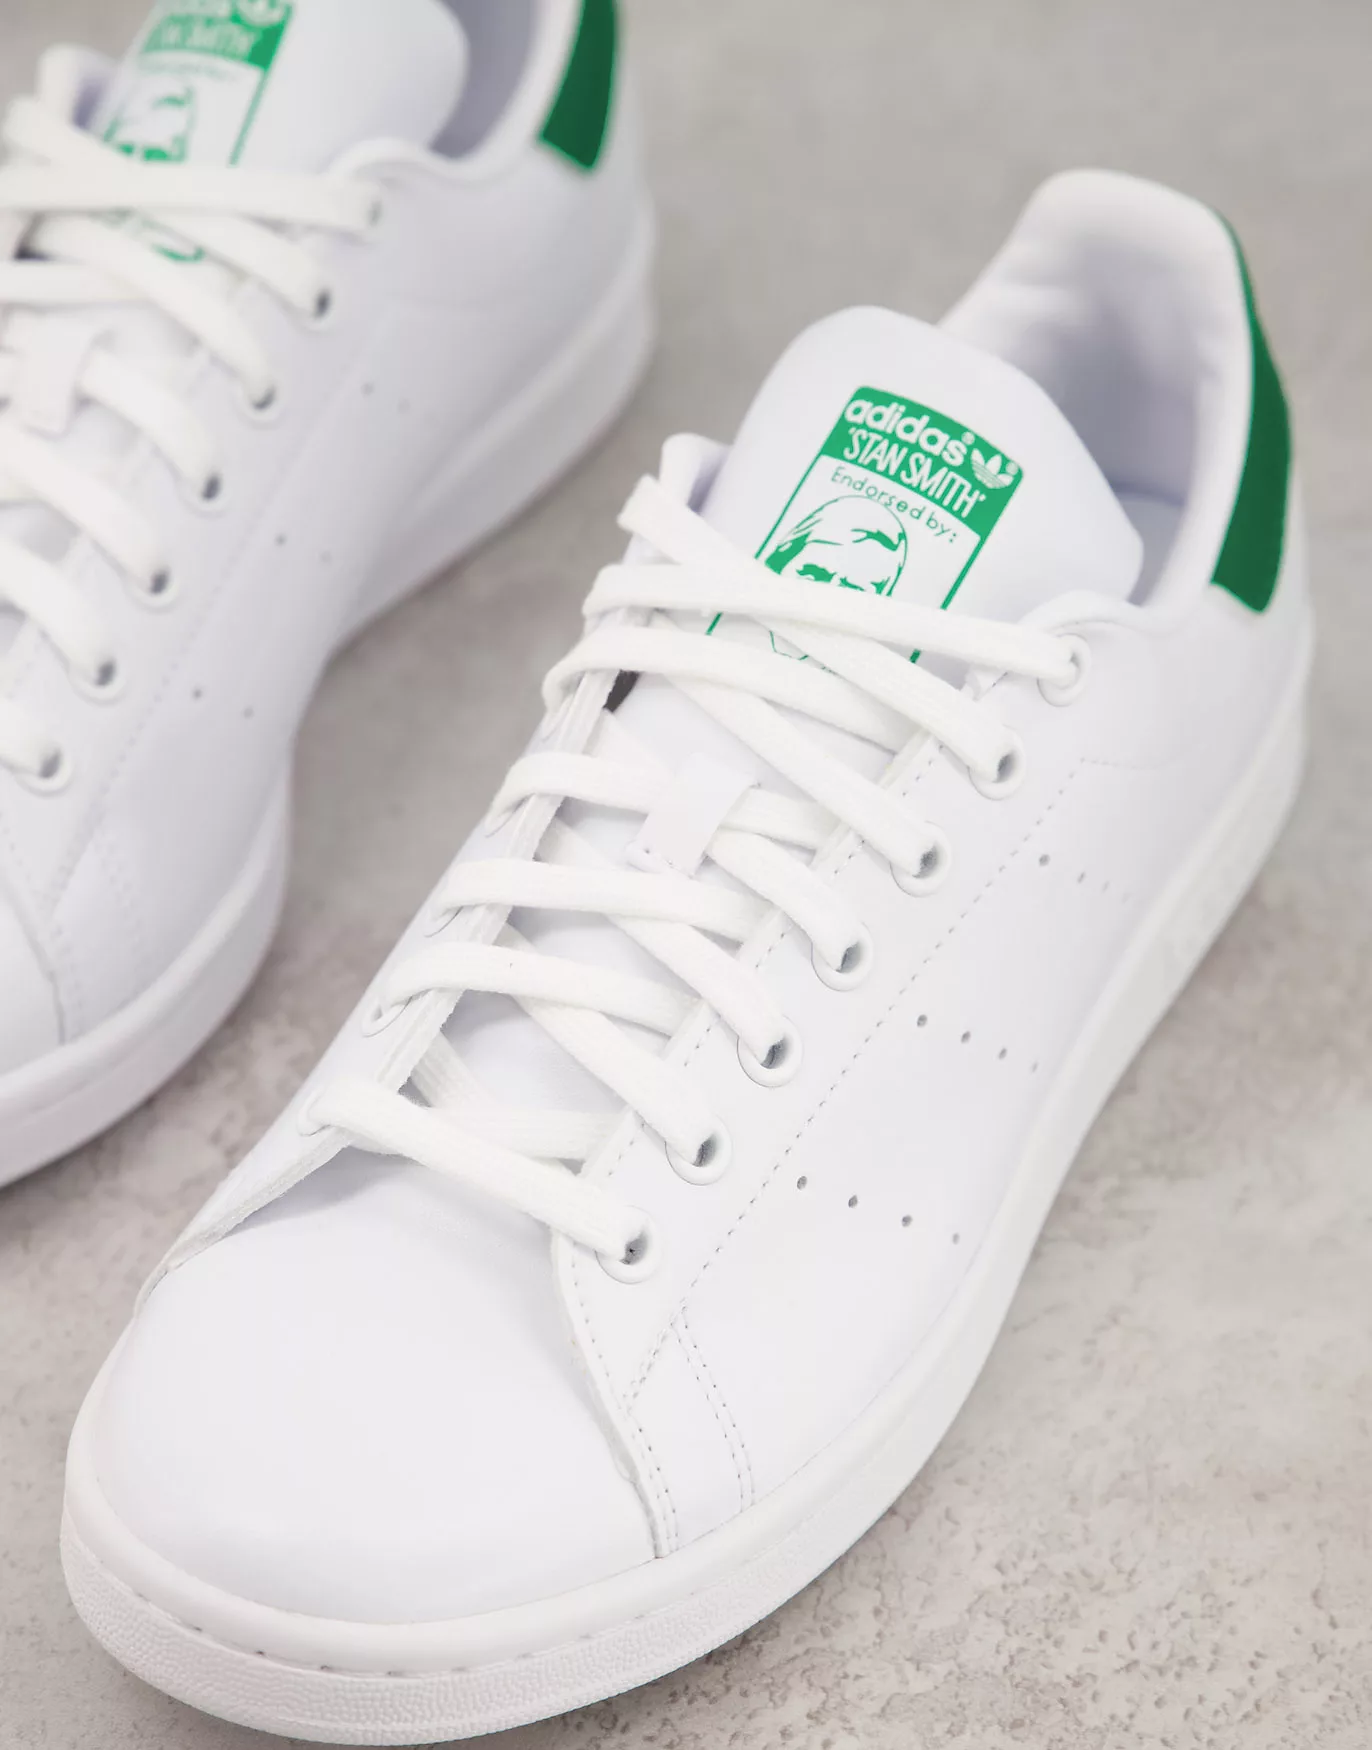 Sustainable Stan Smith trainers in white with green tab, adidas, £74.95